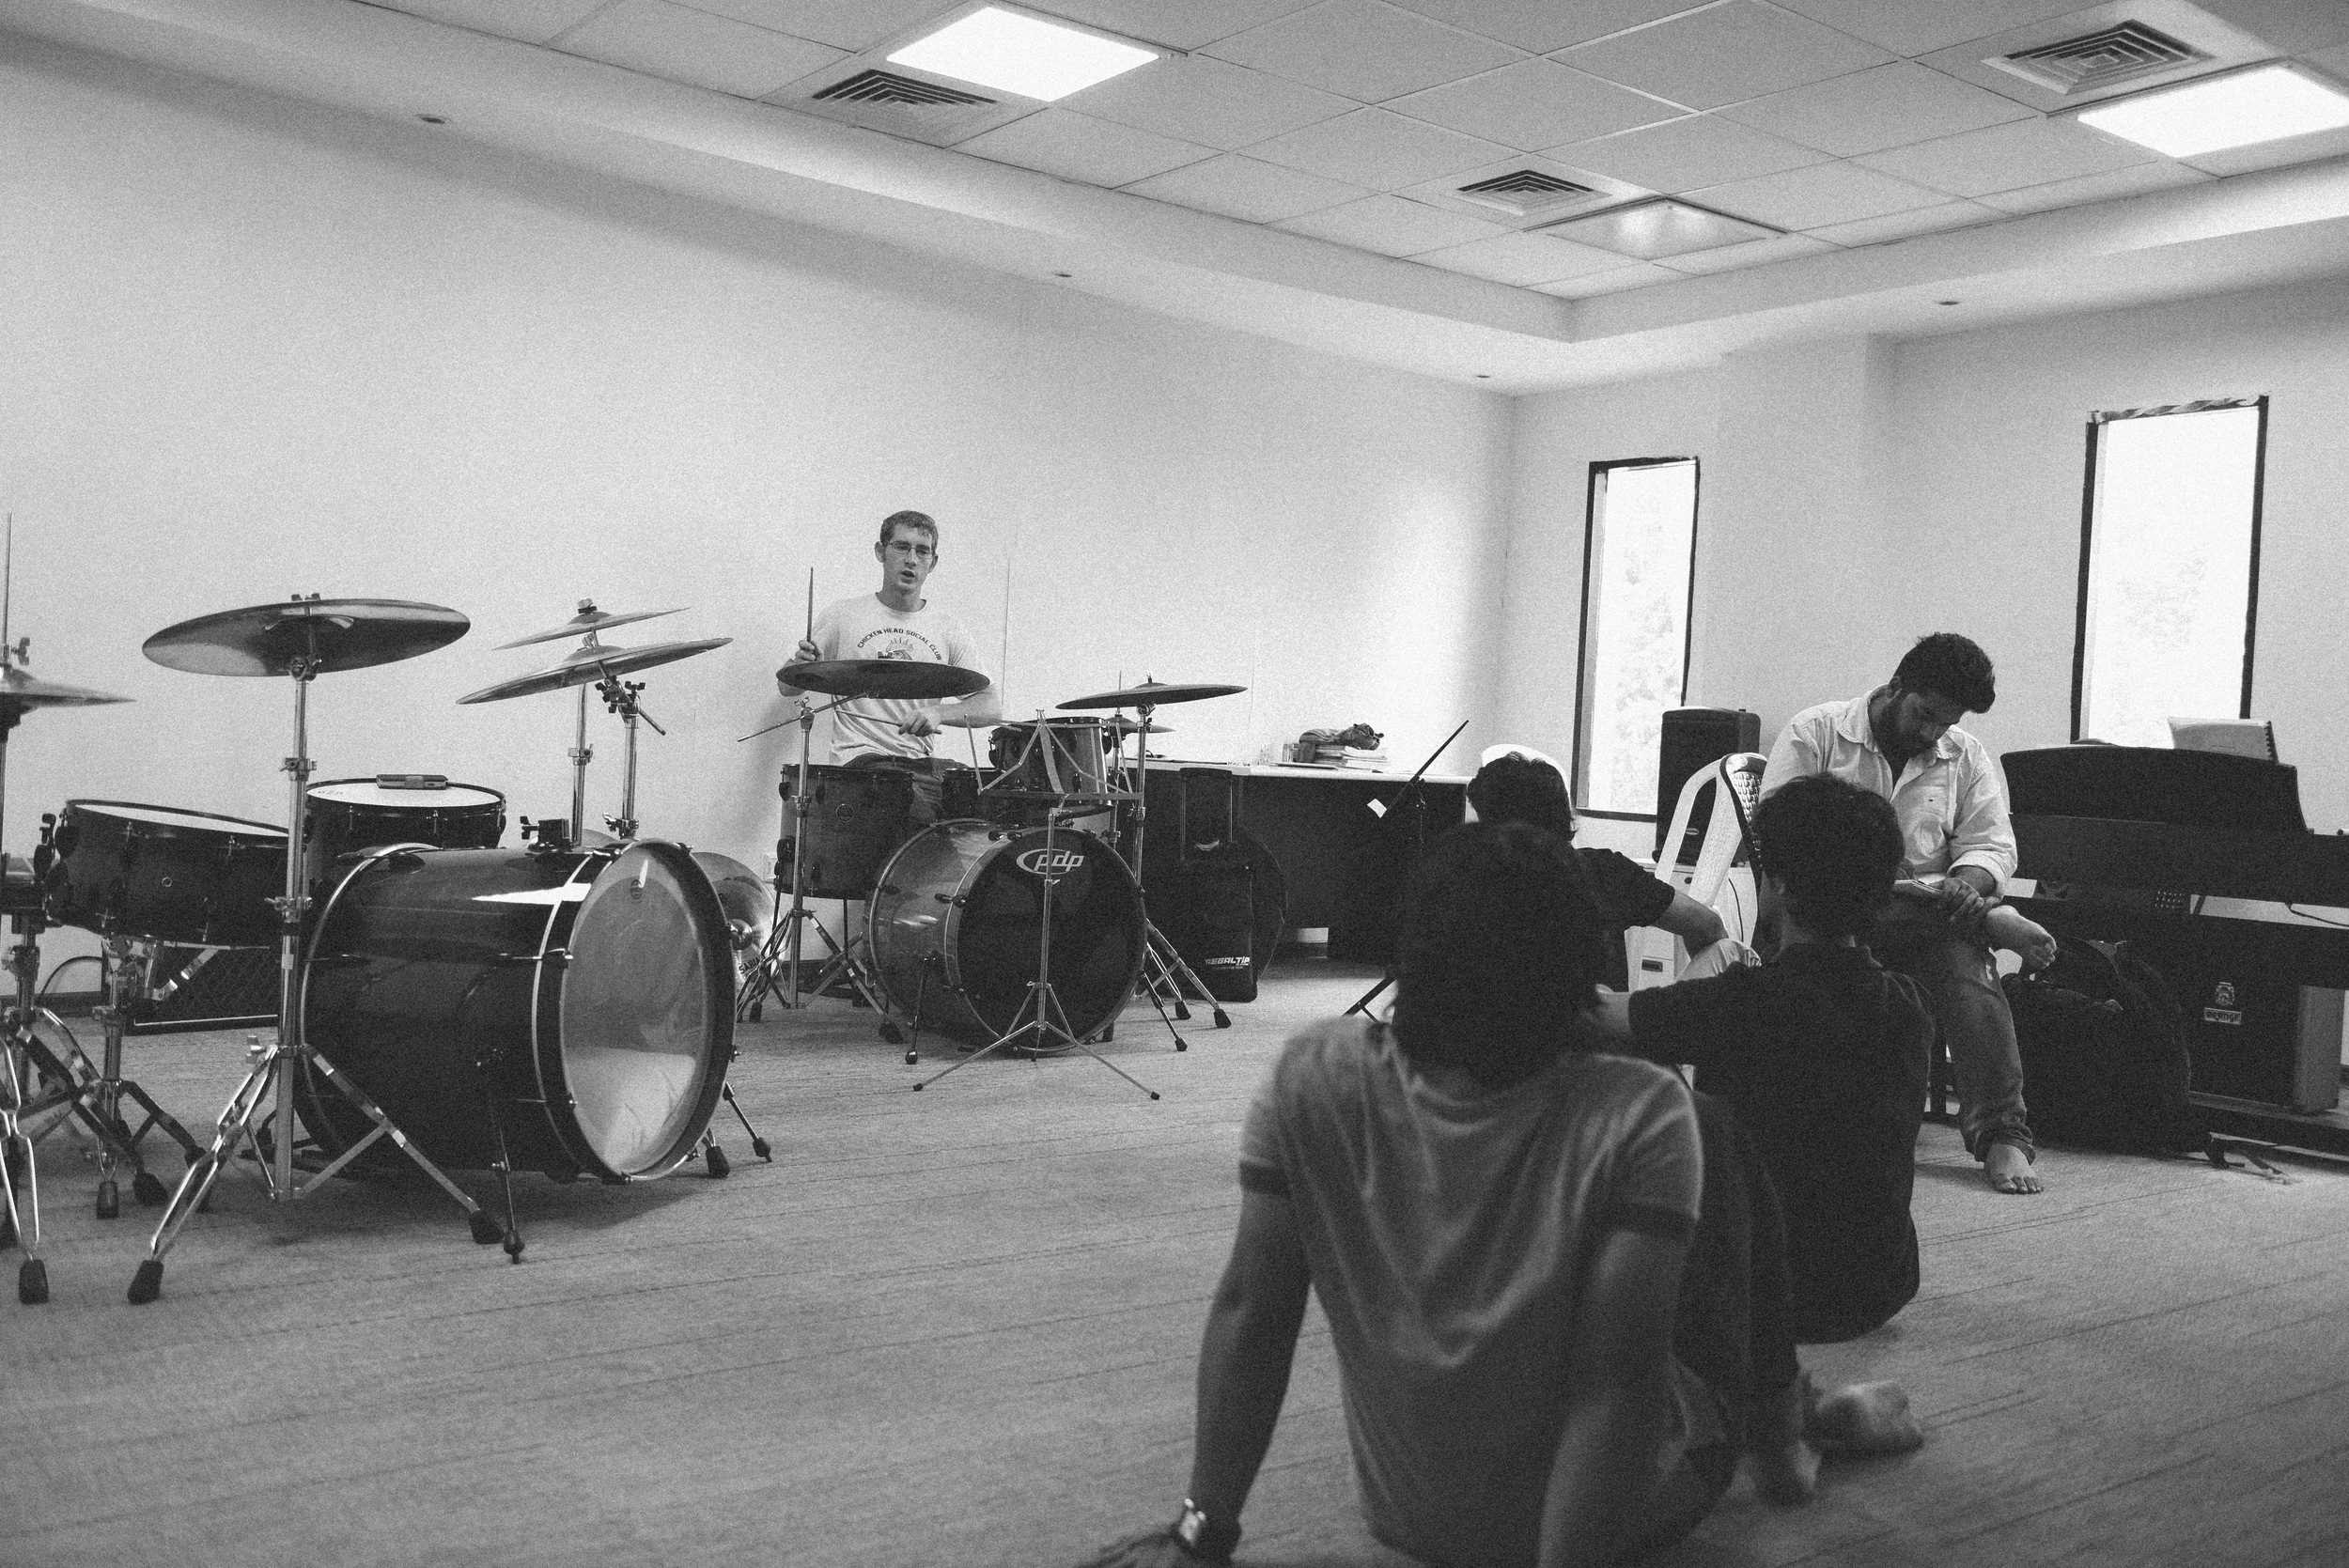 a-day-at-music-school-drums